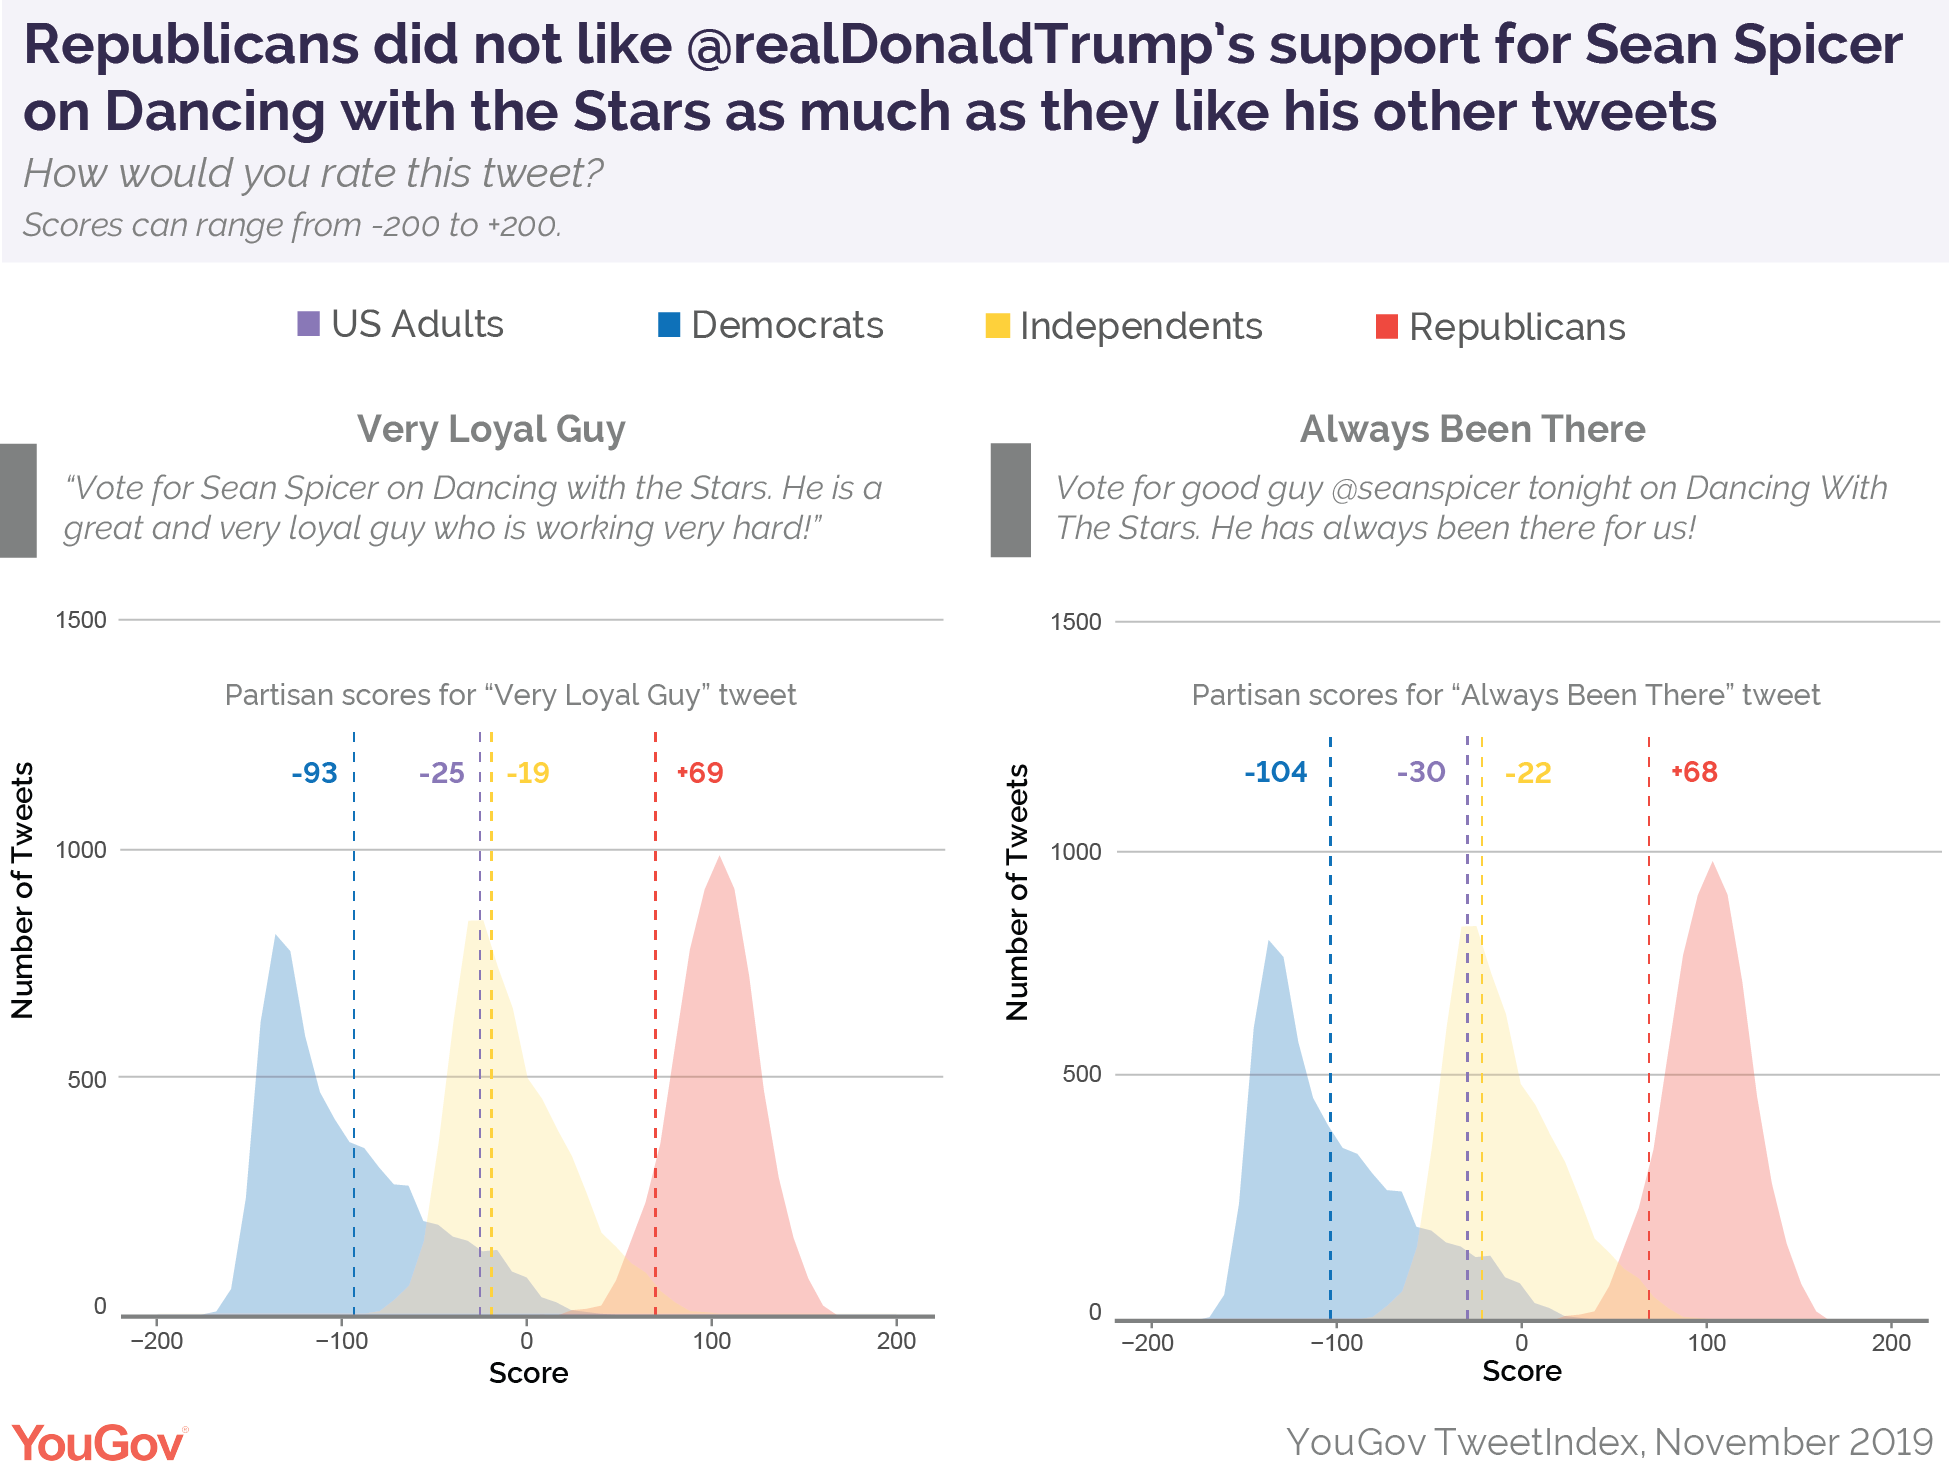 Republicans did not like President Donald Trump's support for Sean Spicer on Dancing with the Stars as much as they like his other tweets